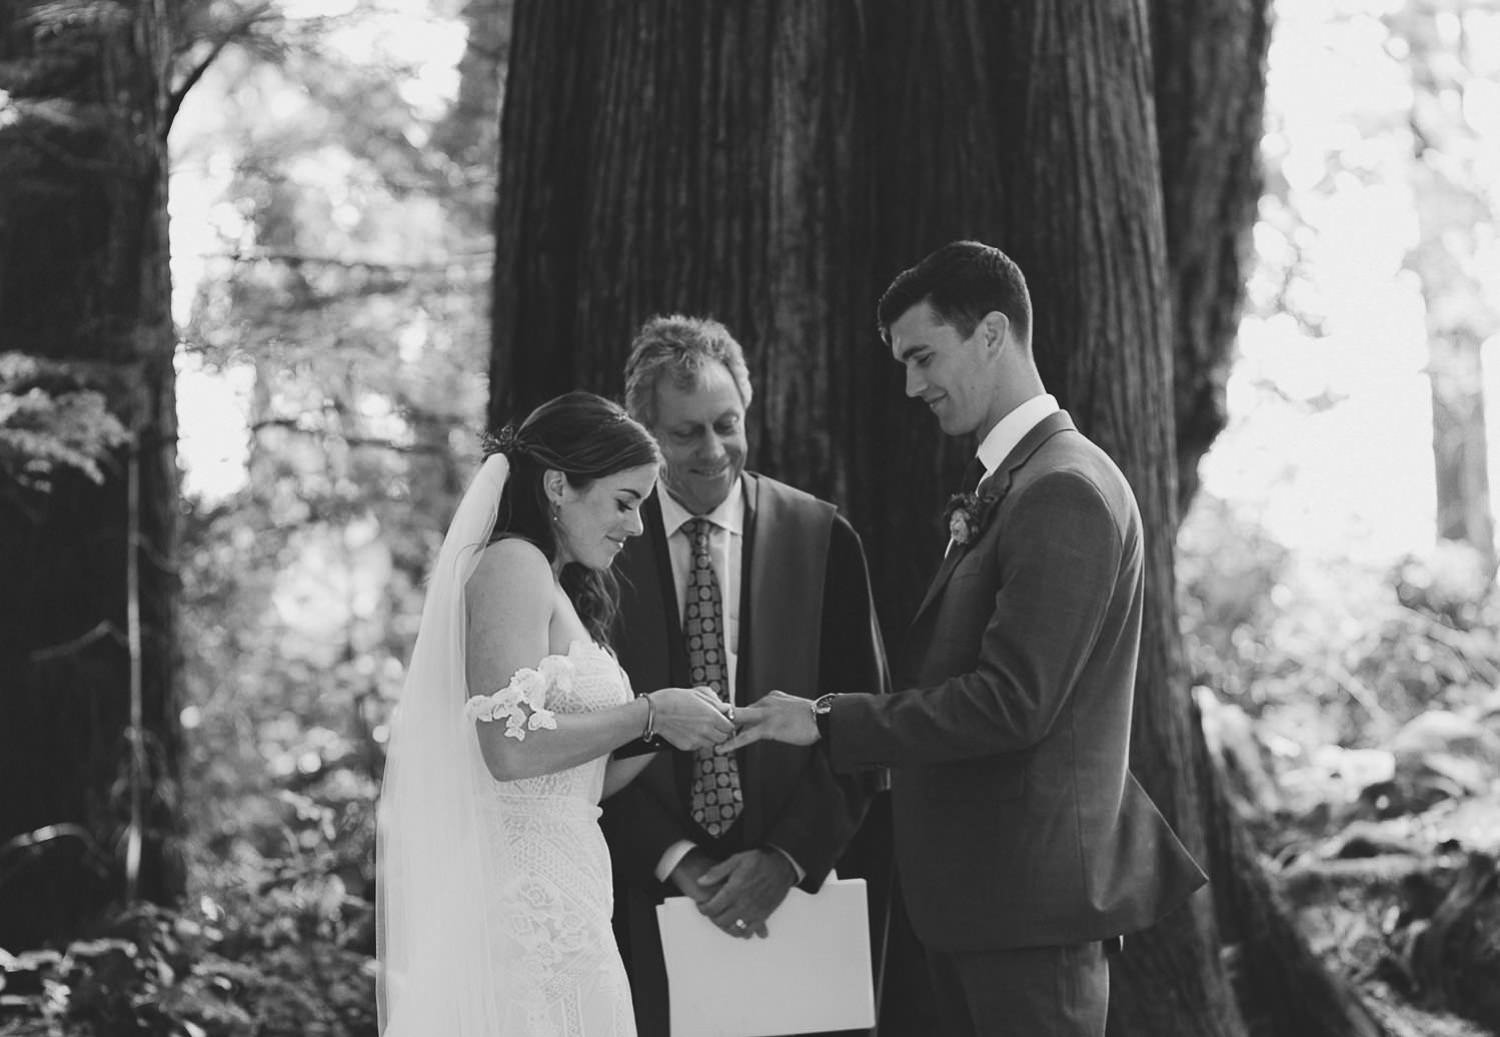 Forever yours - Intimate wedding ceremony into the woods | Photo: Camilla Anchisi